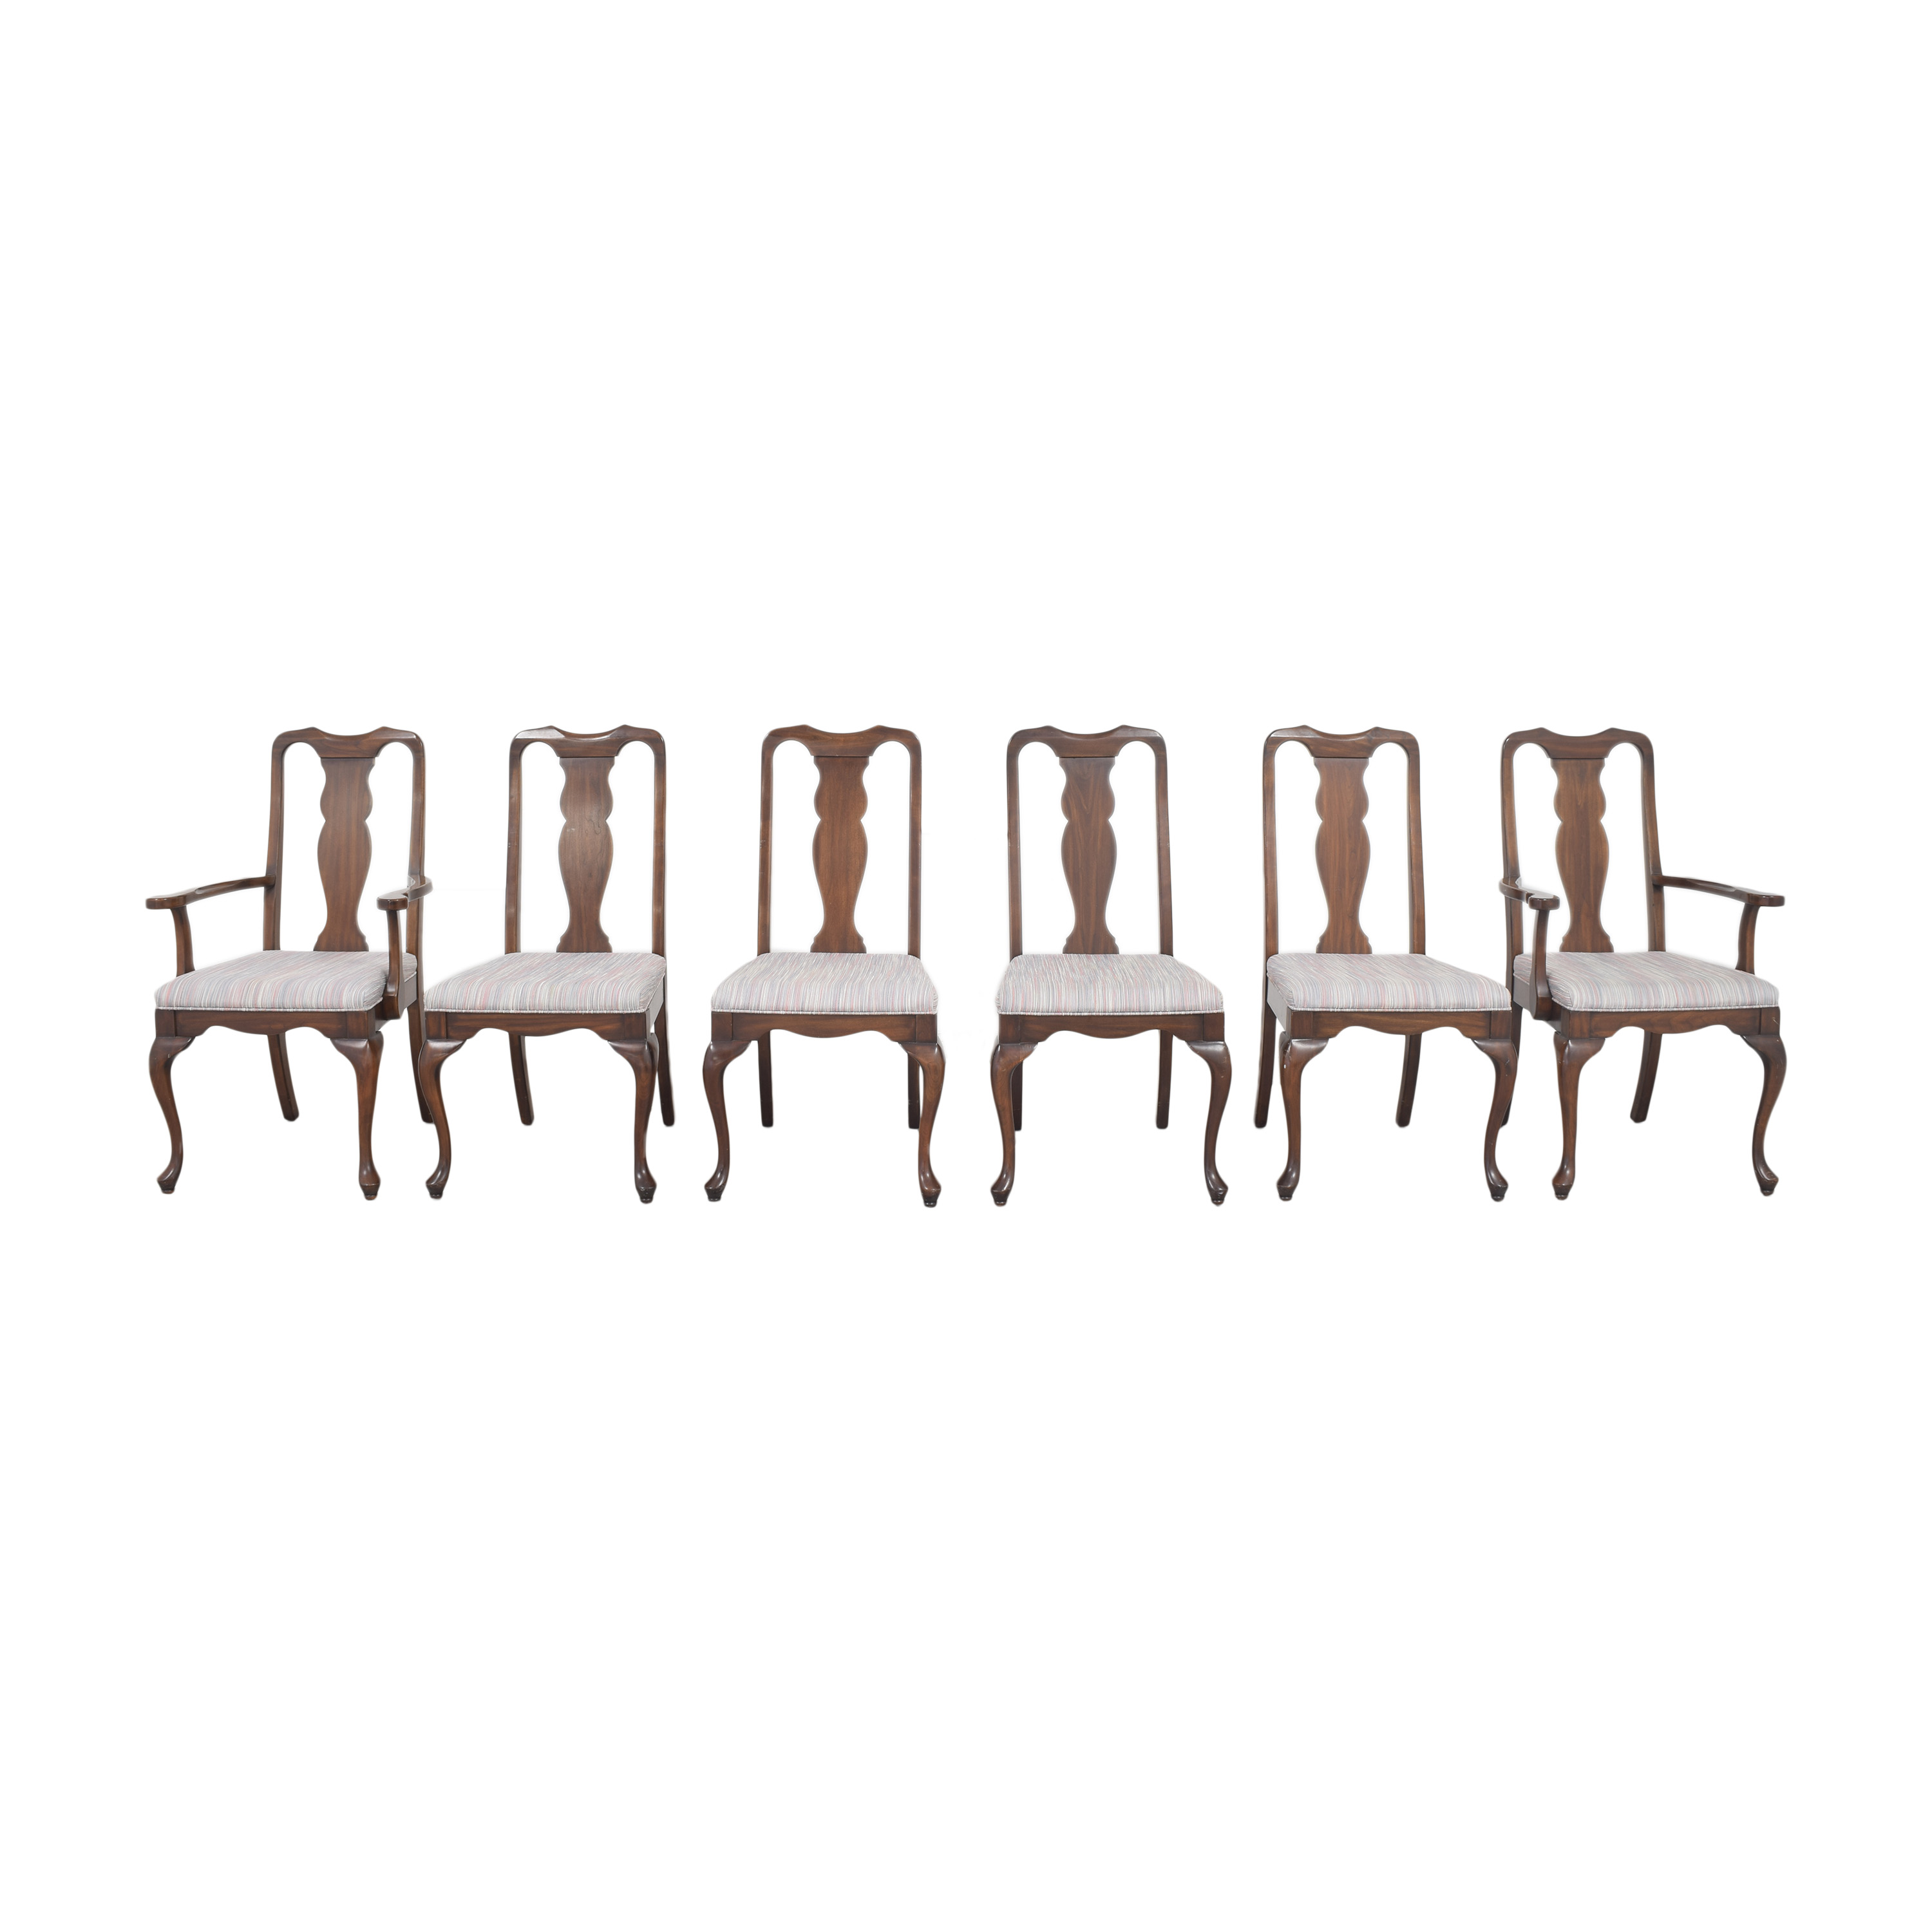 shop Harden Upholstered Dining Chairs Harden Chairs